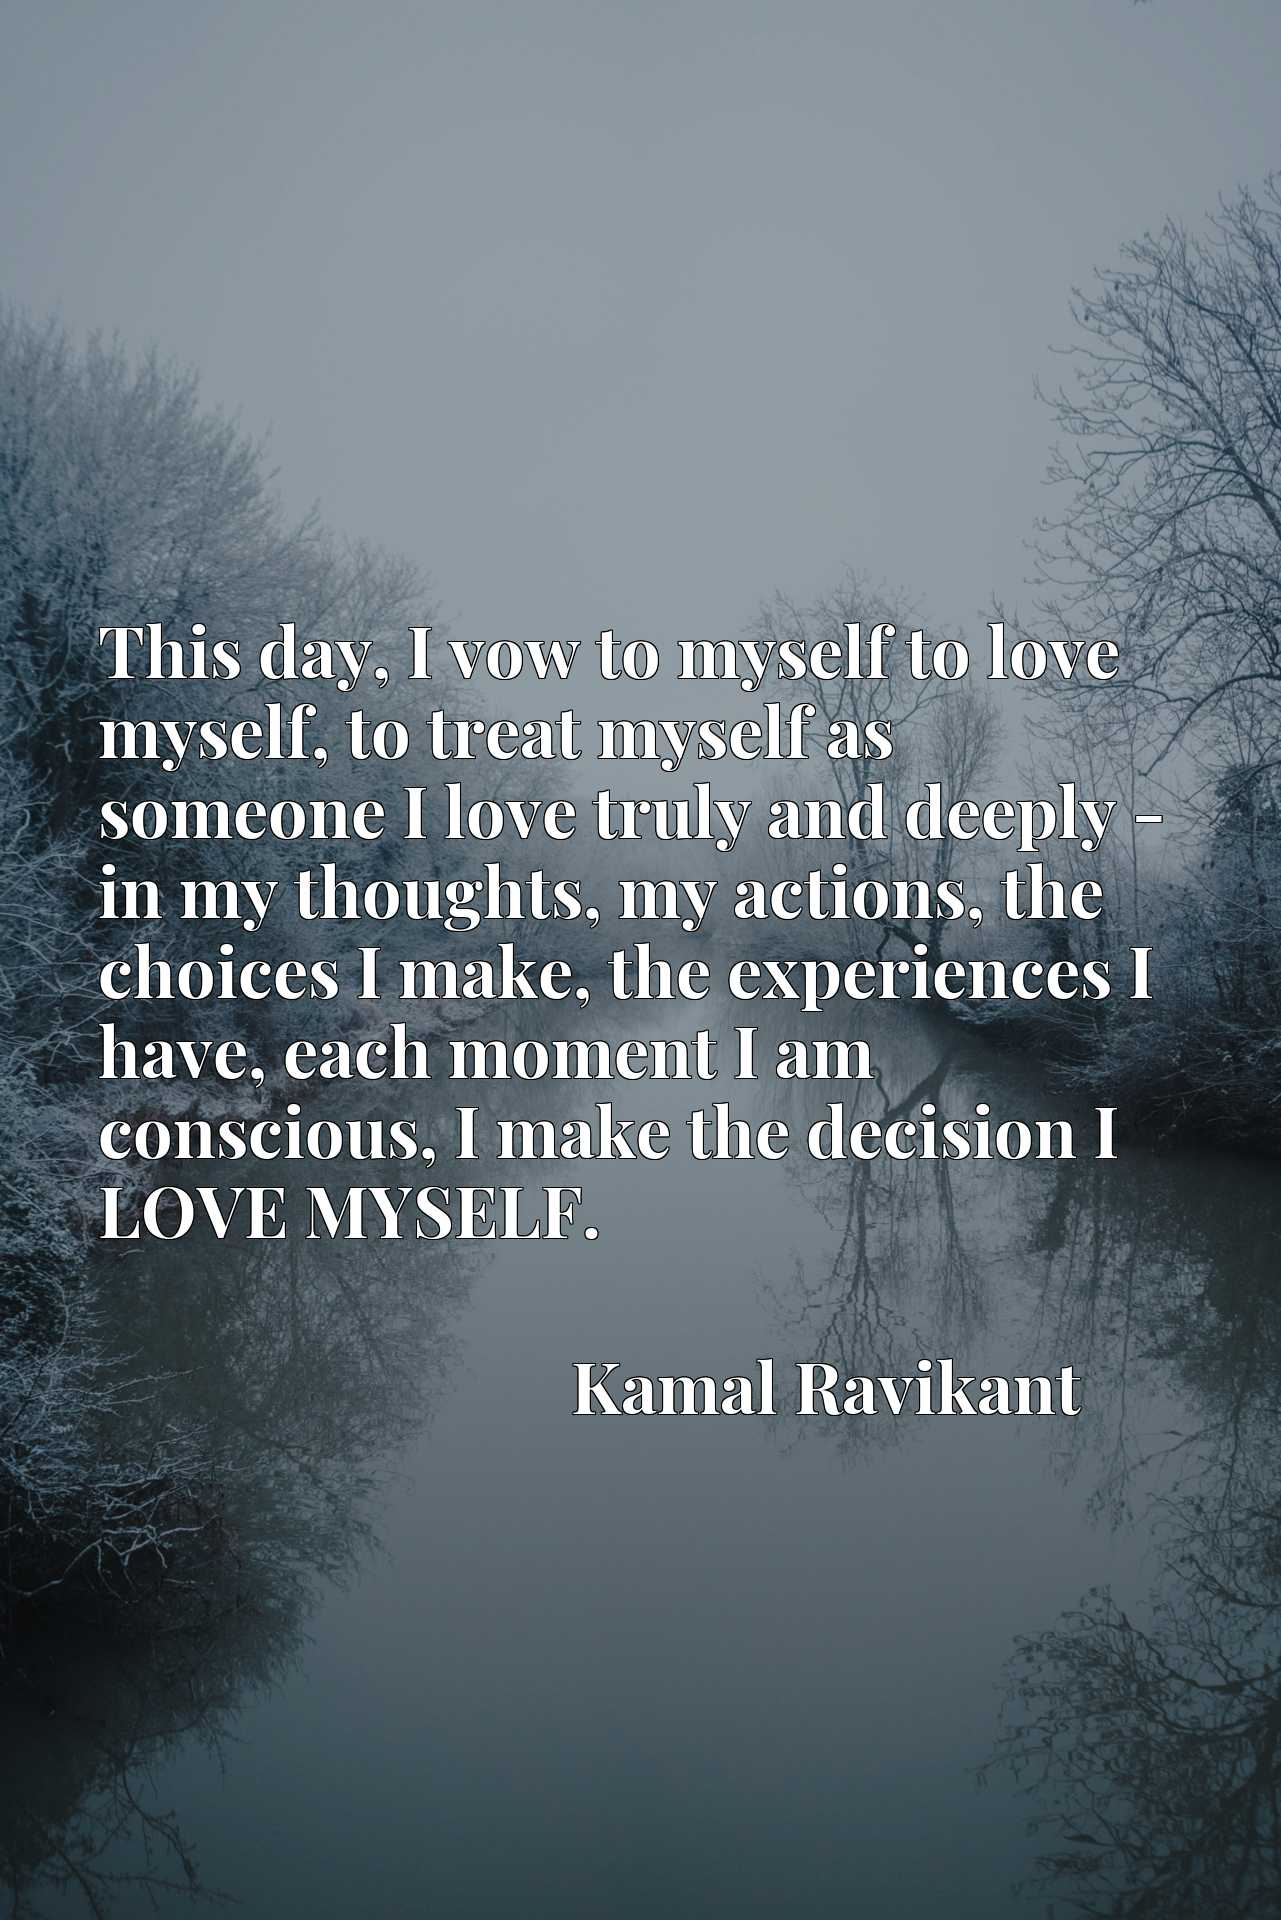 This day, I vow to myself to love myself, to treat myself as someone I love truly and deeply - in my thoughts, my actions, the choices I make, the experiences I have, each moment I am conscious, I make the decision I LOVE MYSELF.